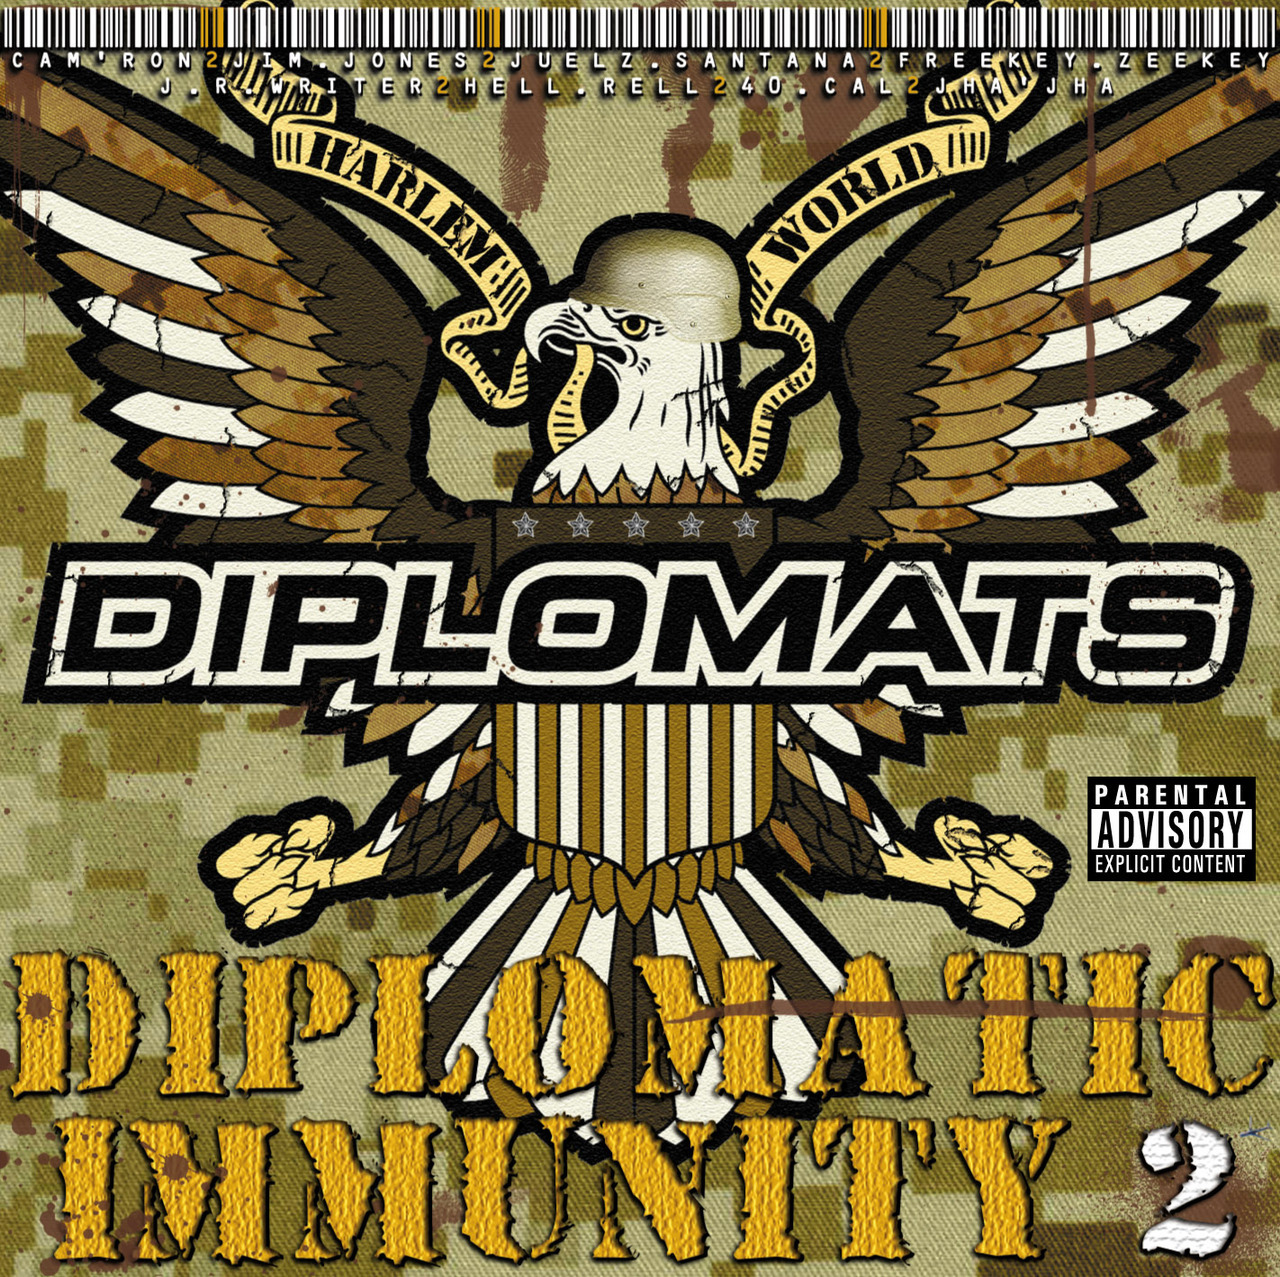 BACK IN THE DAY |11/23/04| The Diplomats released their second album, Diplomatic Immunity 2, on Koch Records.